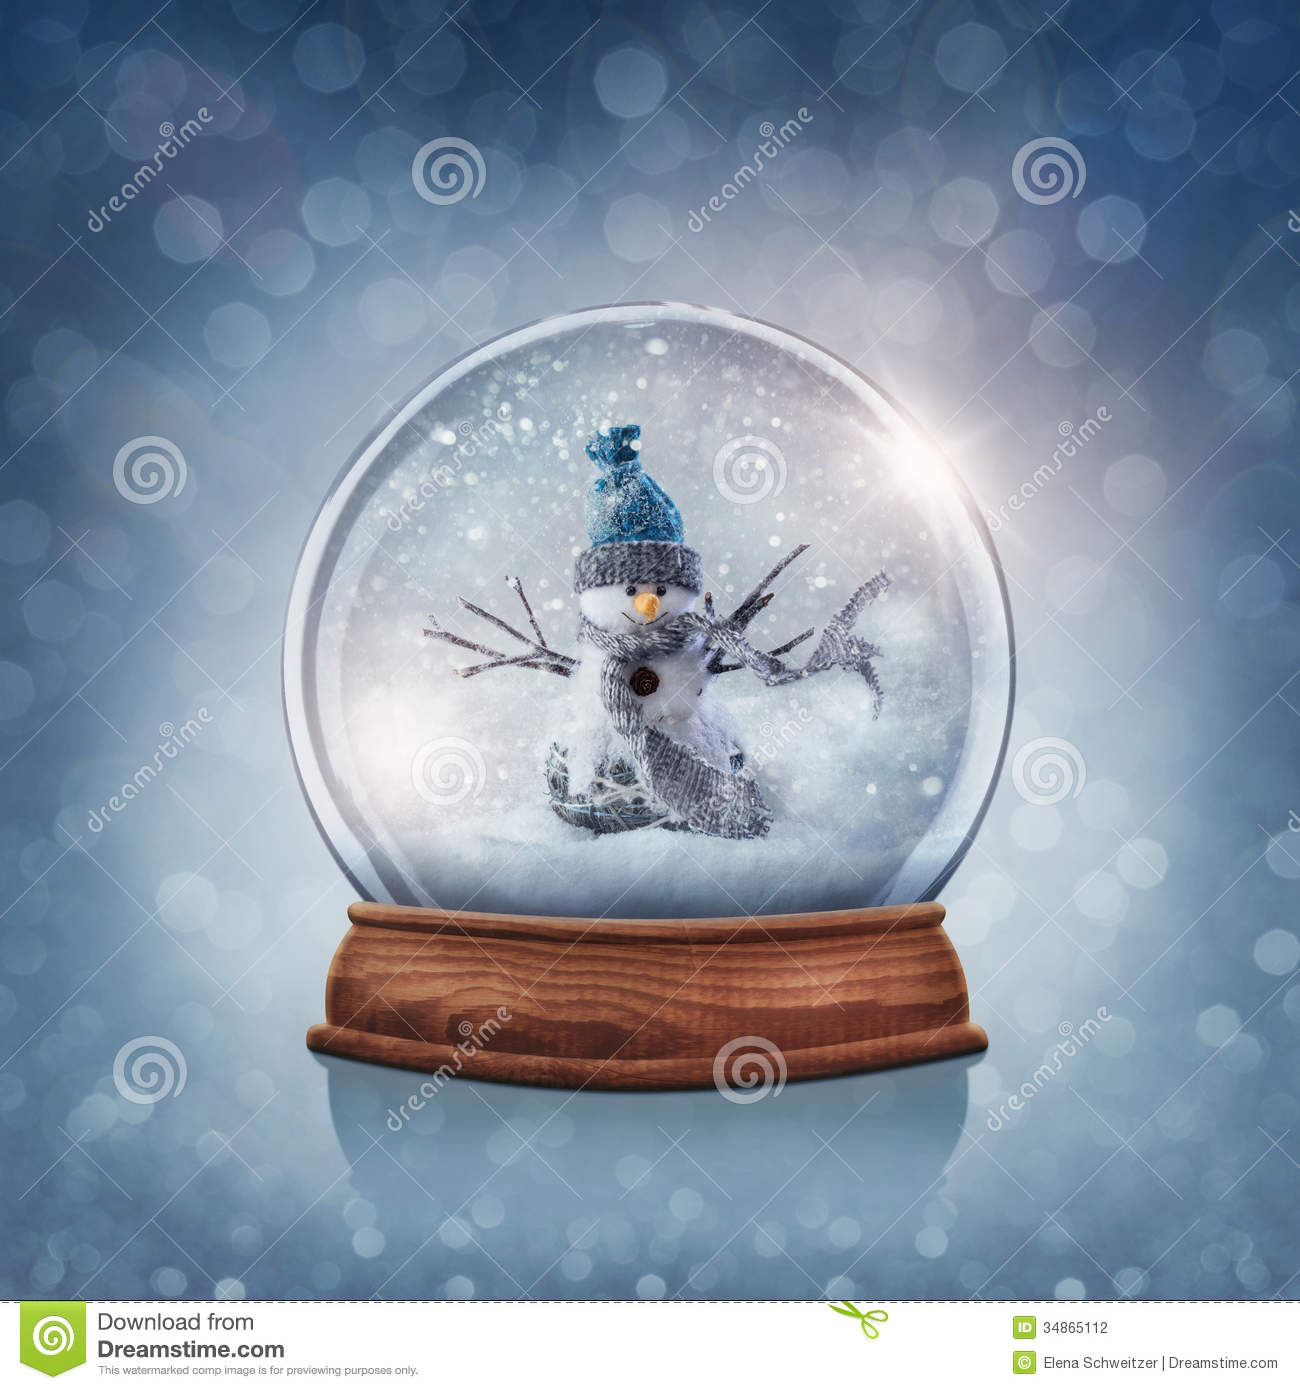 Cute Animated Hd Wallpapers Snow Globe With Snowman Stock Photo Image Of Copy Bokeh